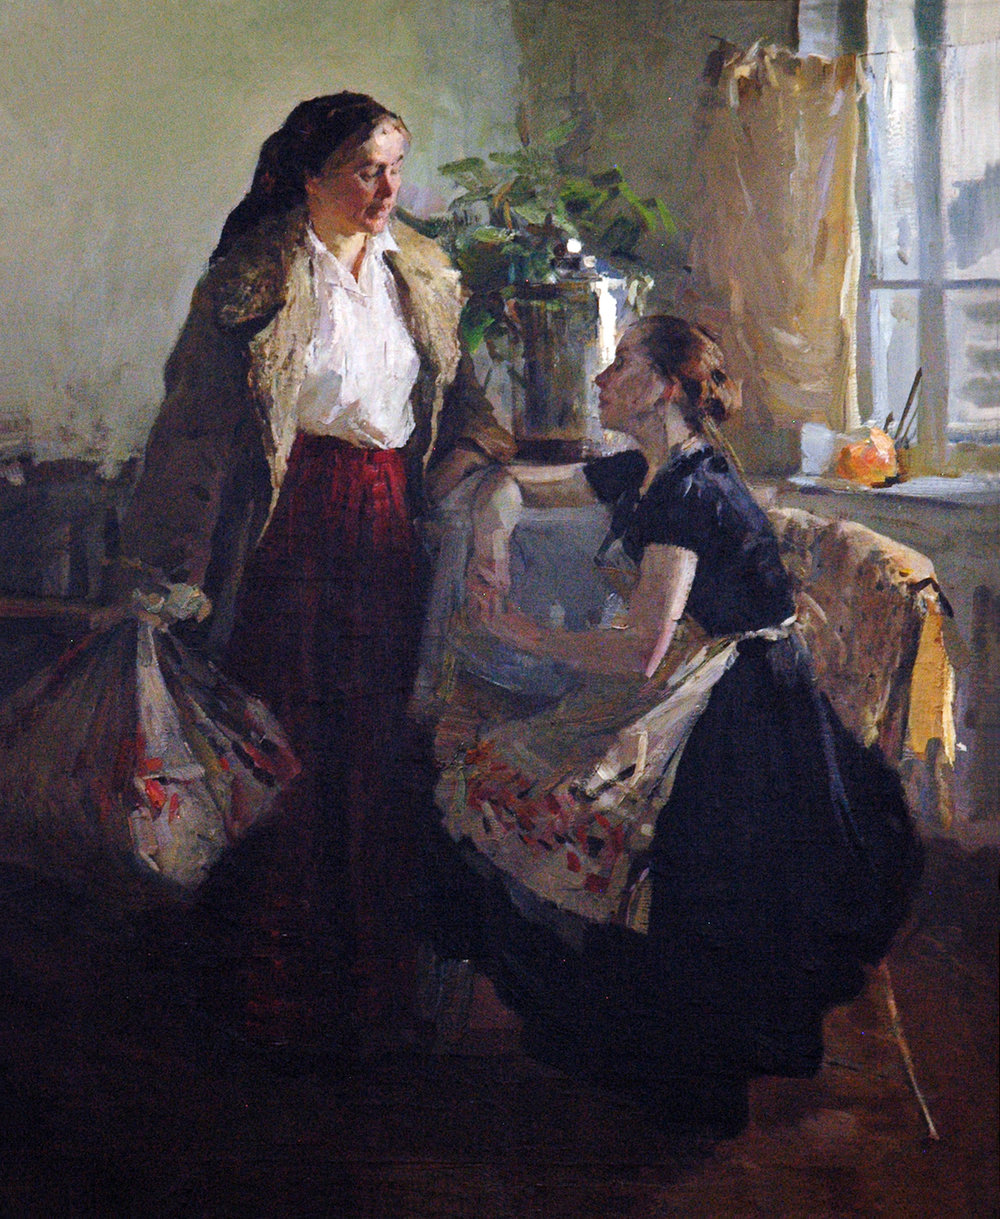 Mother and Daughter, 47 x 39, oil on canvas, 1957